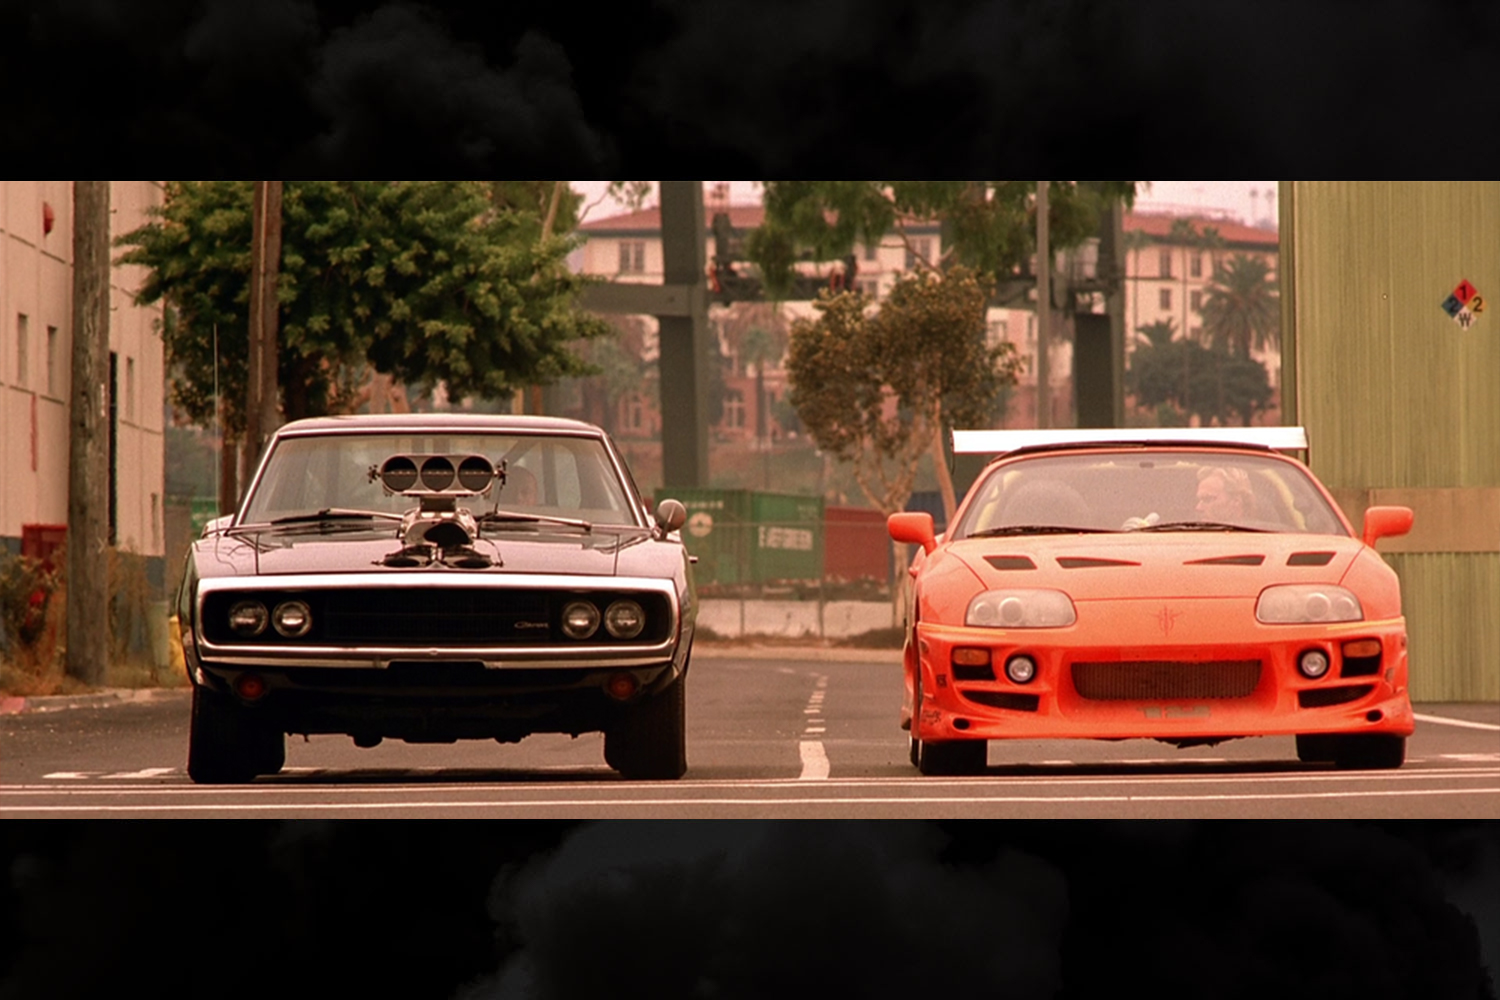 The final race in the original The Fast and the Furious, Dom's ridiculous 1970 Dodge Charger R/T versus Brian's 1994 Toyota Supra MK IV